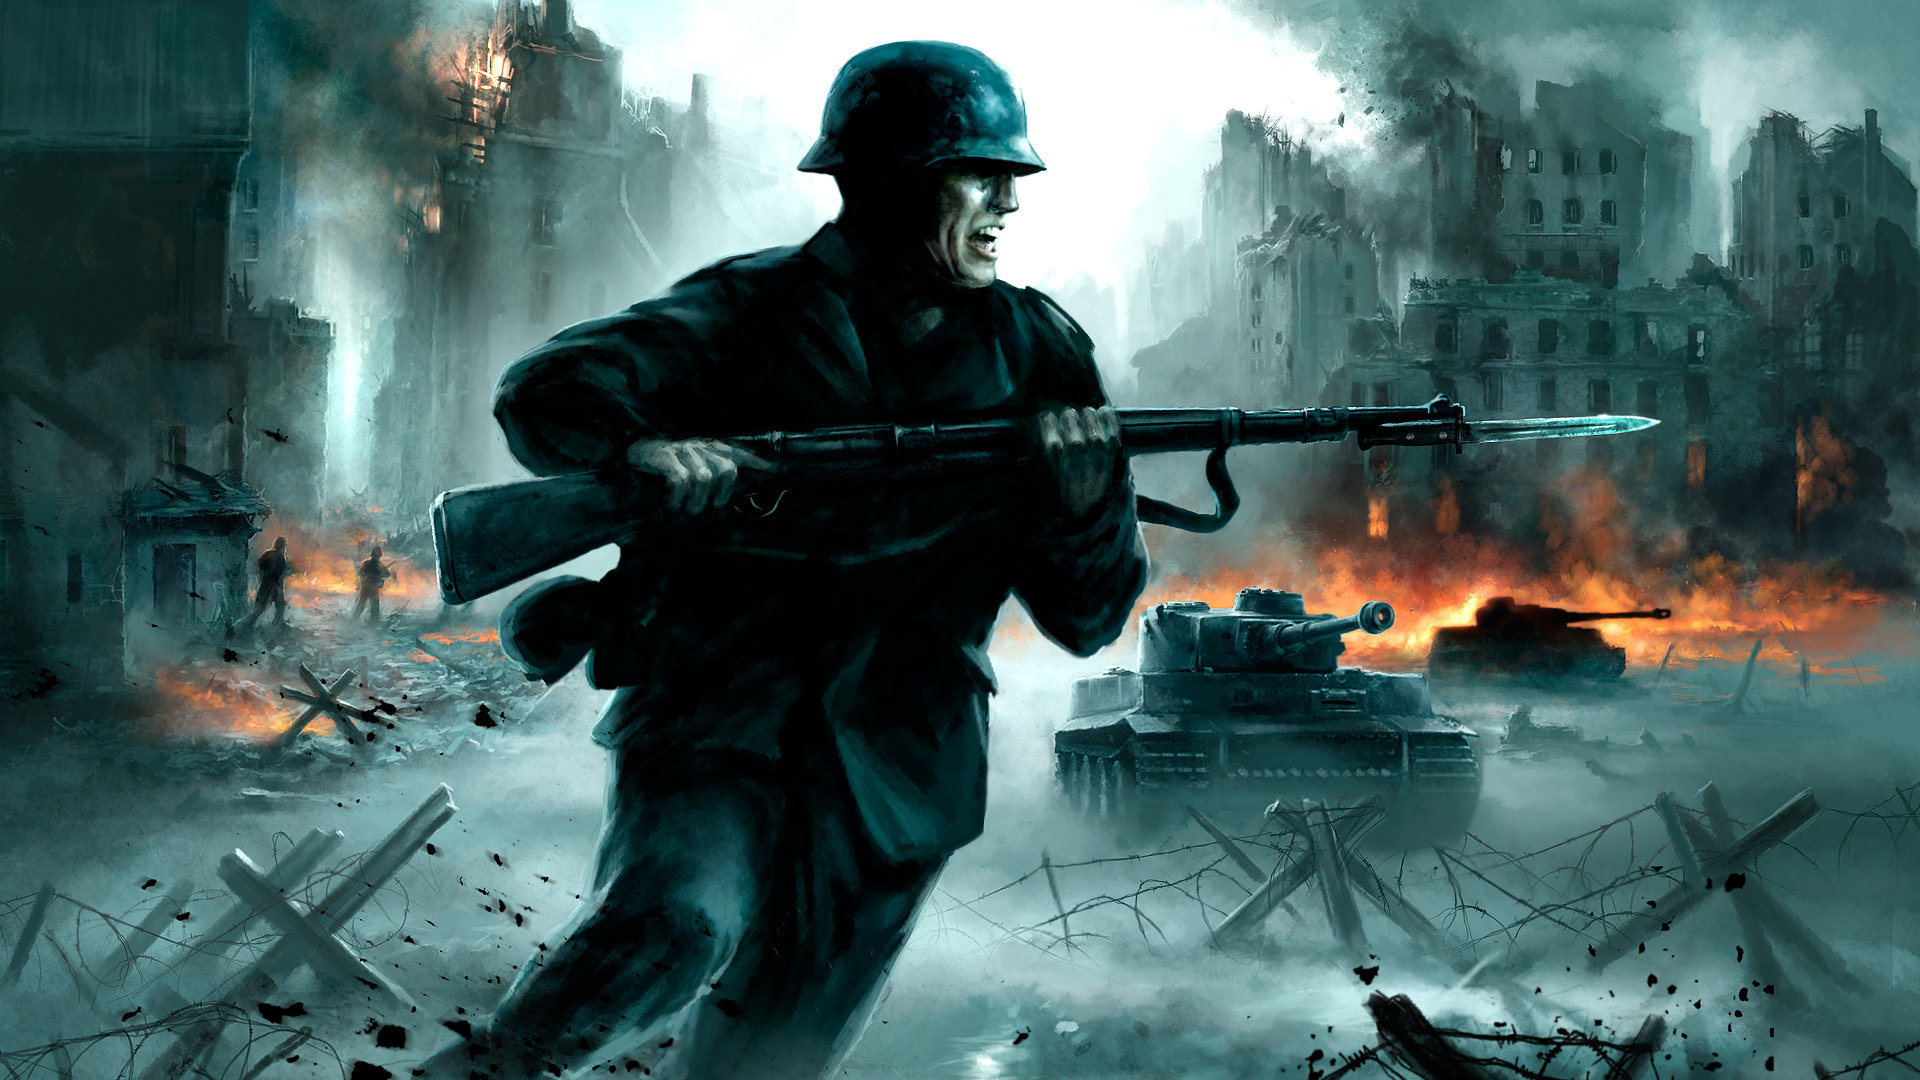 Best Cool Military Army Wallpaper Id 85087 For High Resolution Hd